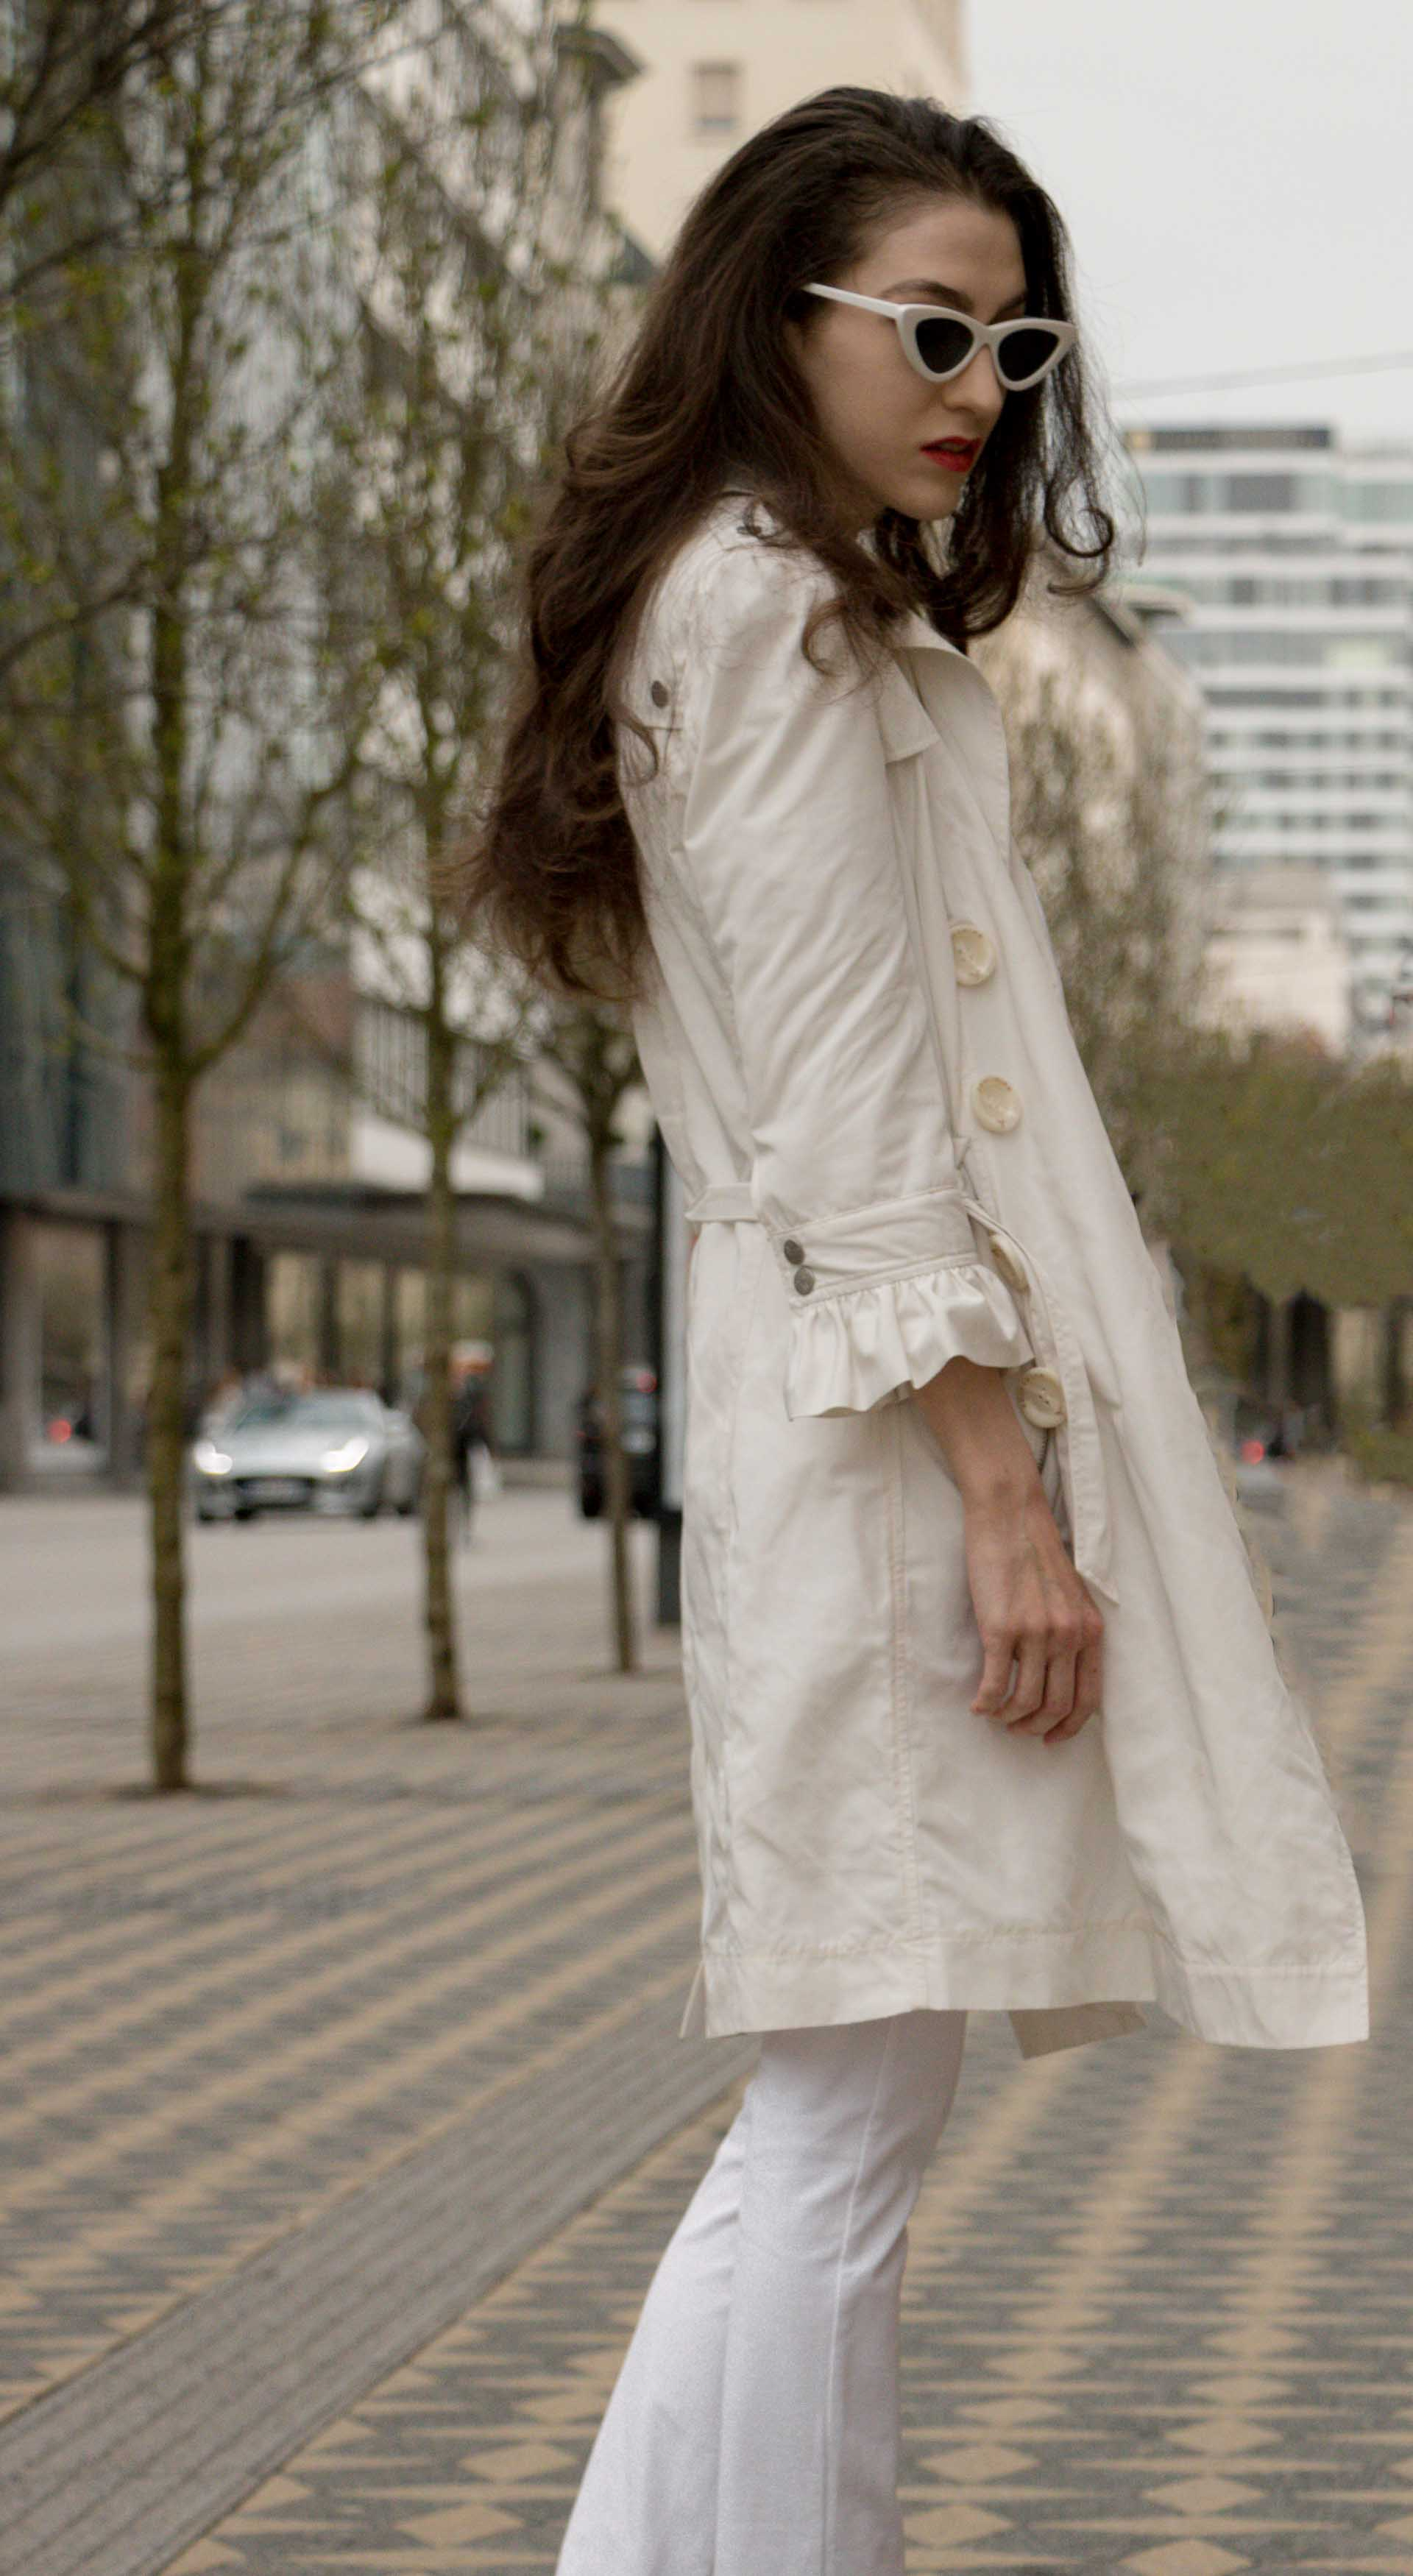 Veronika Lipar Fashion Blogger of Brunette from Wall Street wearing all in white suit from Juicy Couture, long white trench coat with ruffled sleeves, Adam Selman x Lespecs white lolita sunglasses while standing on the Slovenska cesta street in Ljubljana